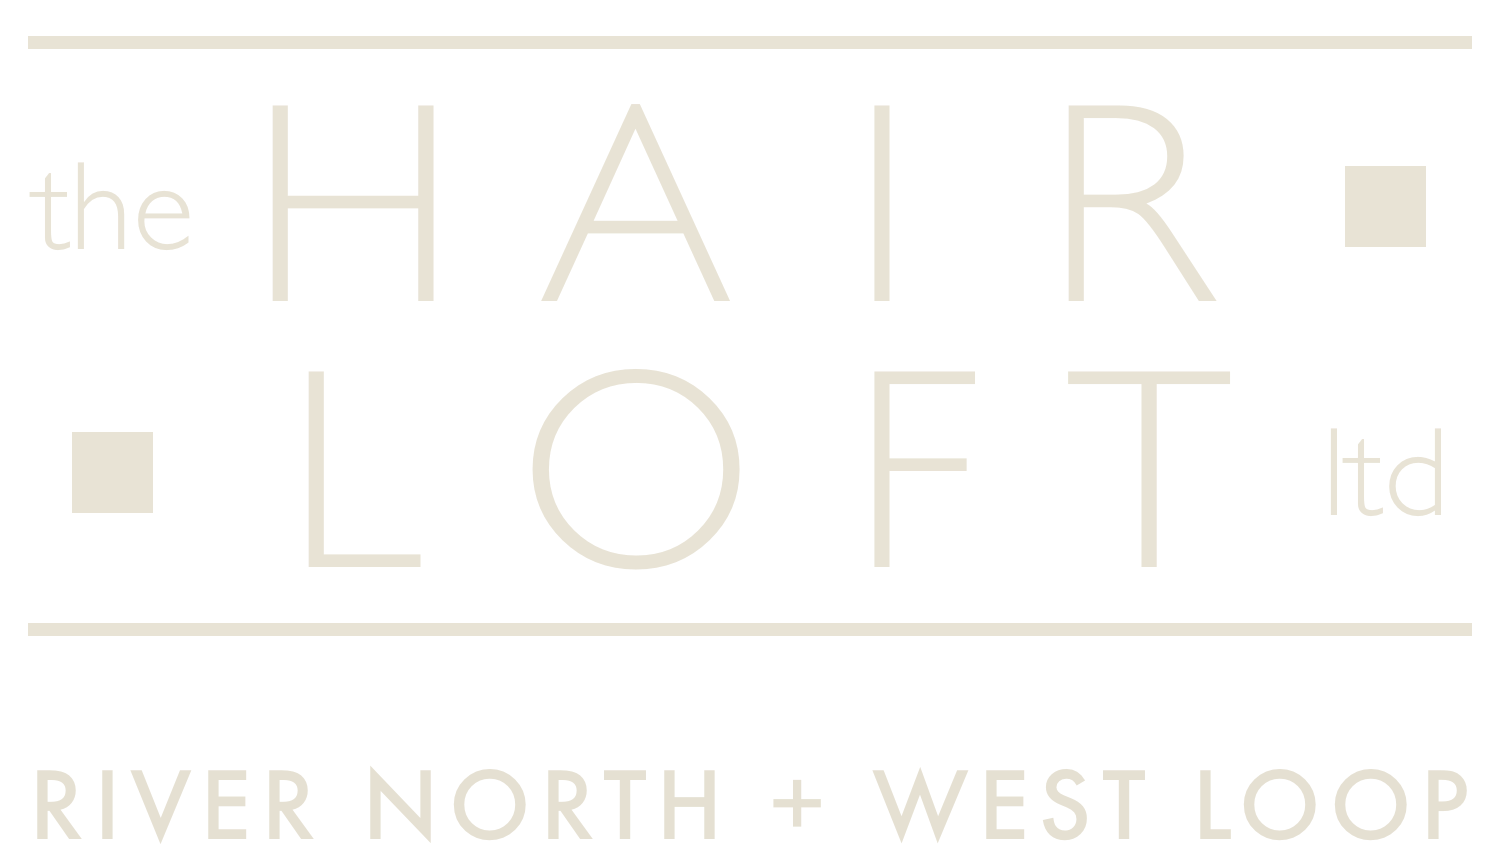 the HAIR LOFT ltd